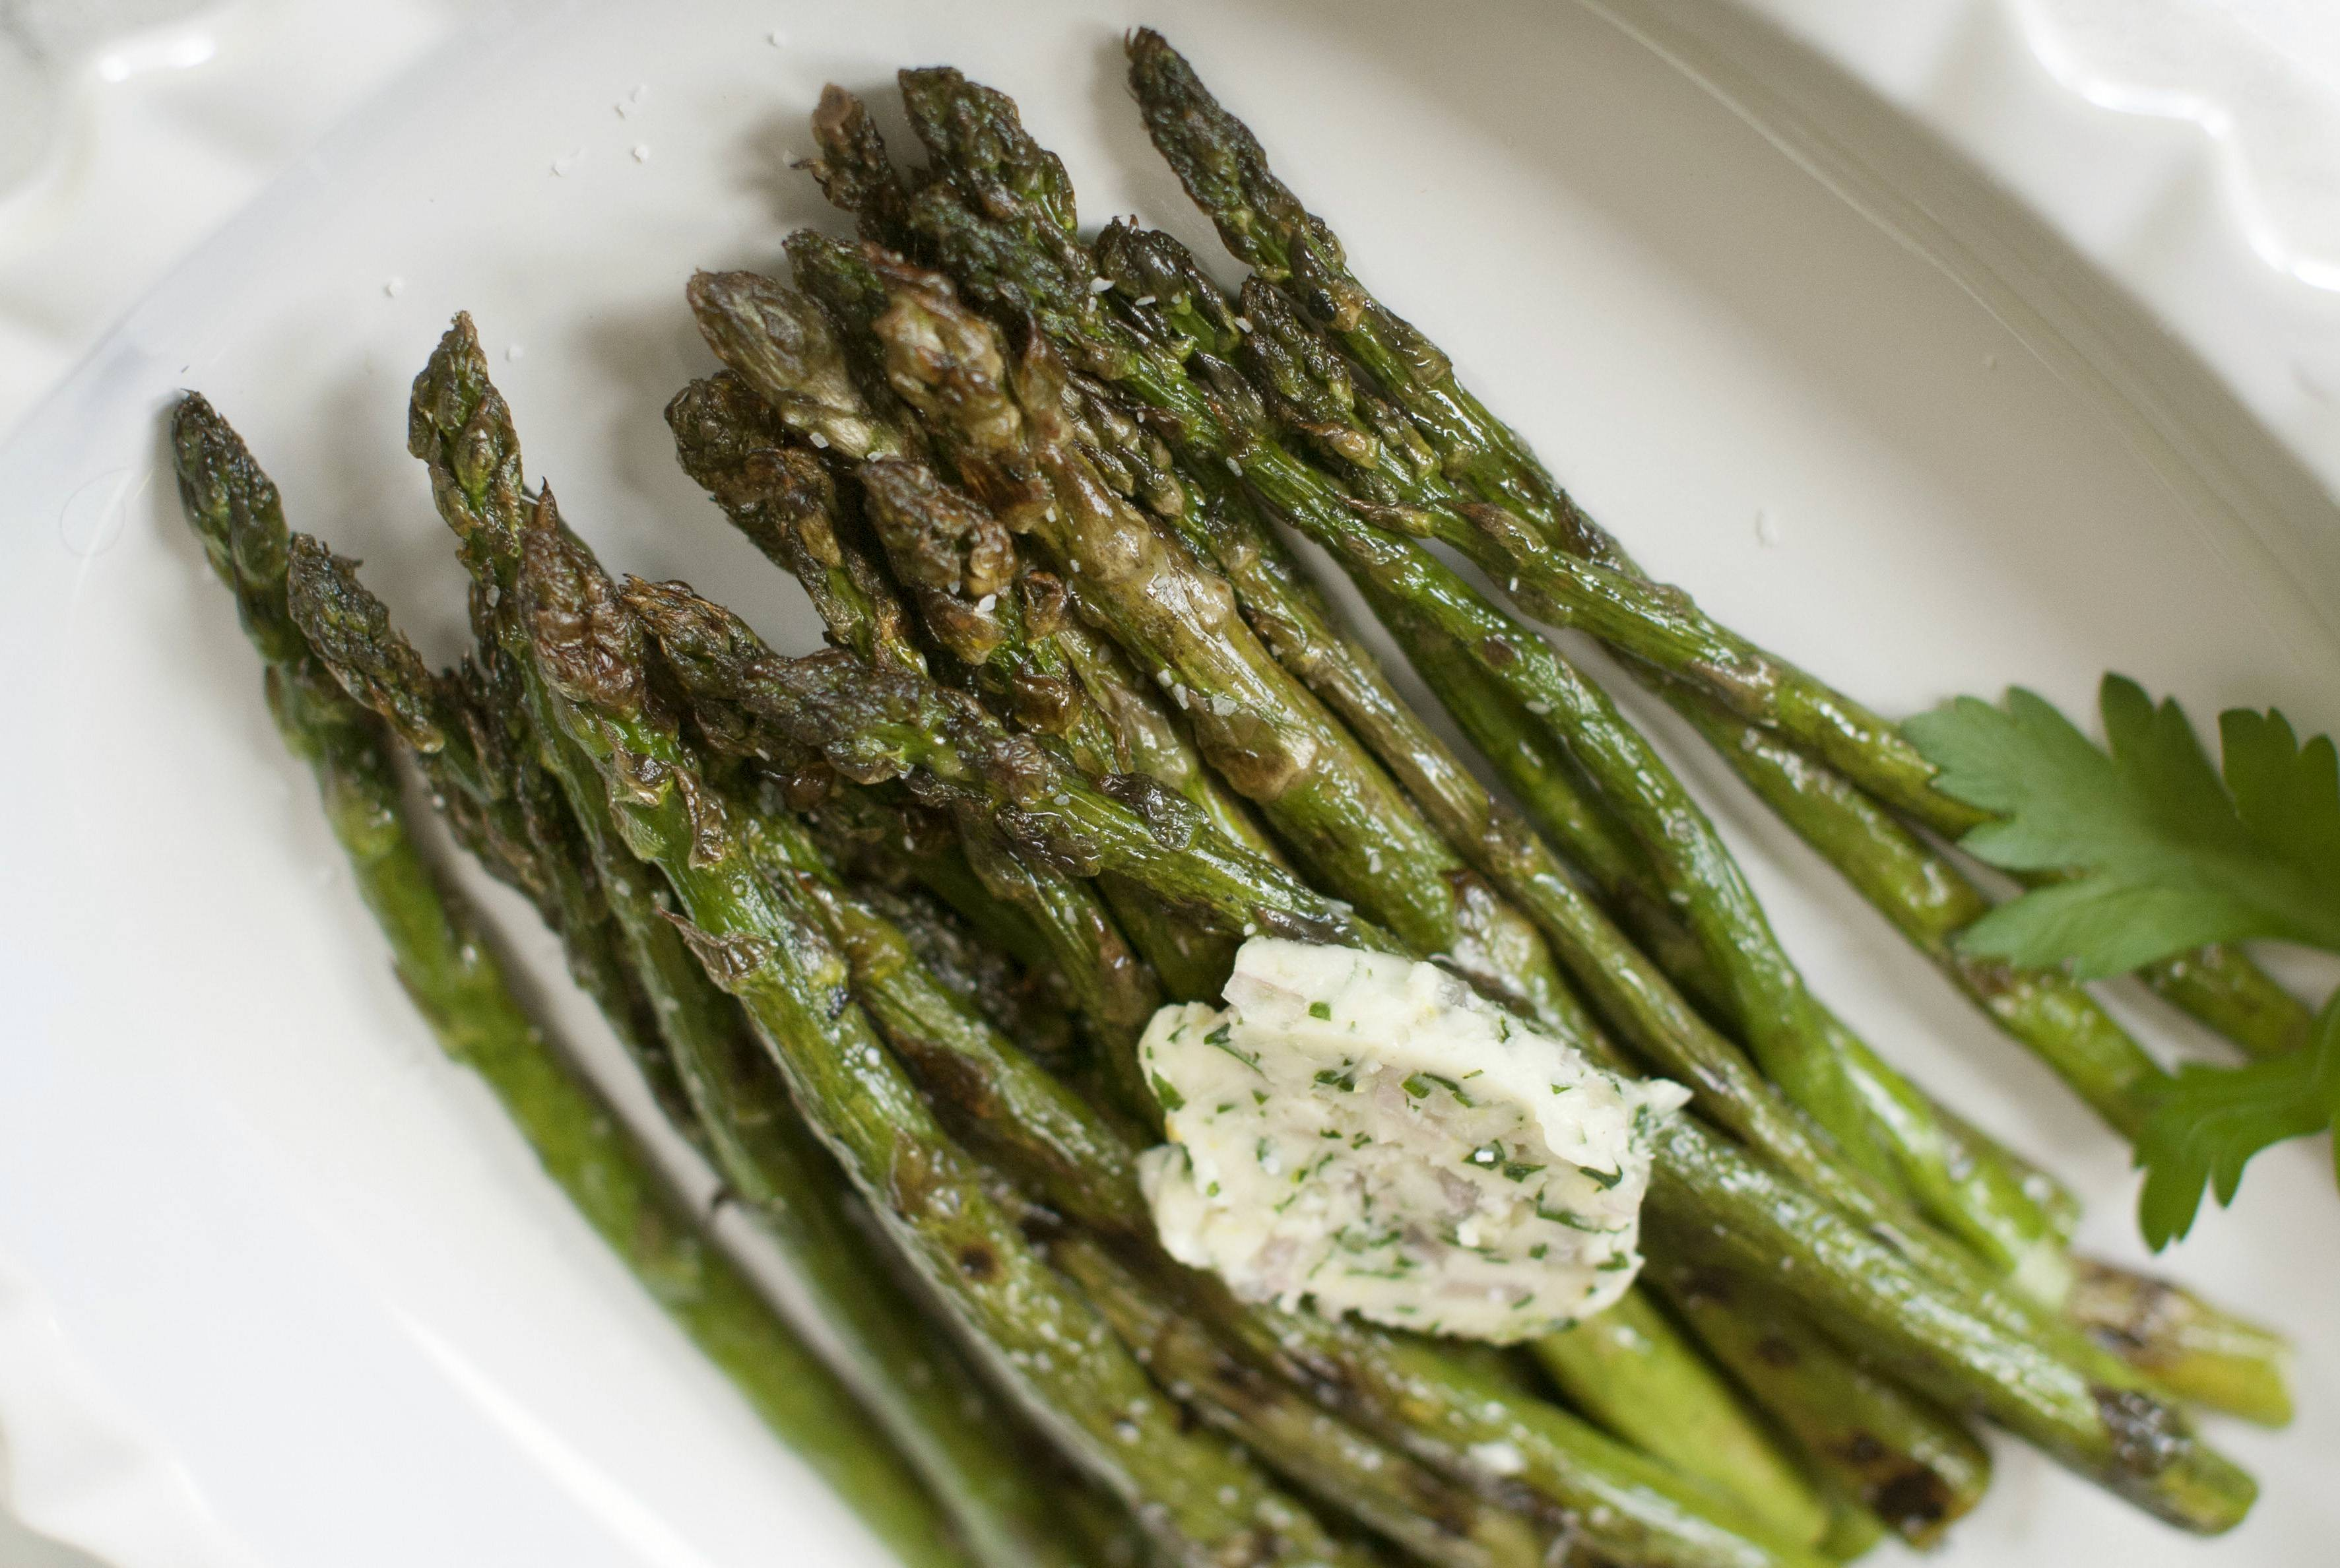 Lemony butter makes grilled asparagus simply addictive.